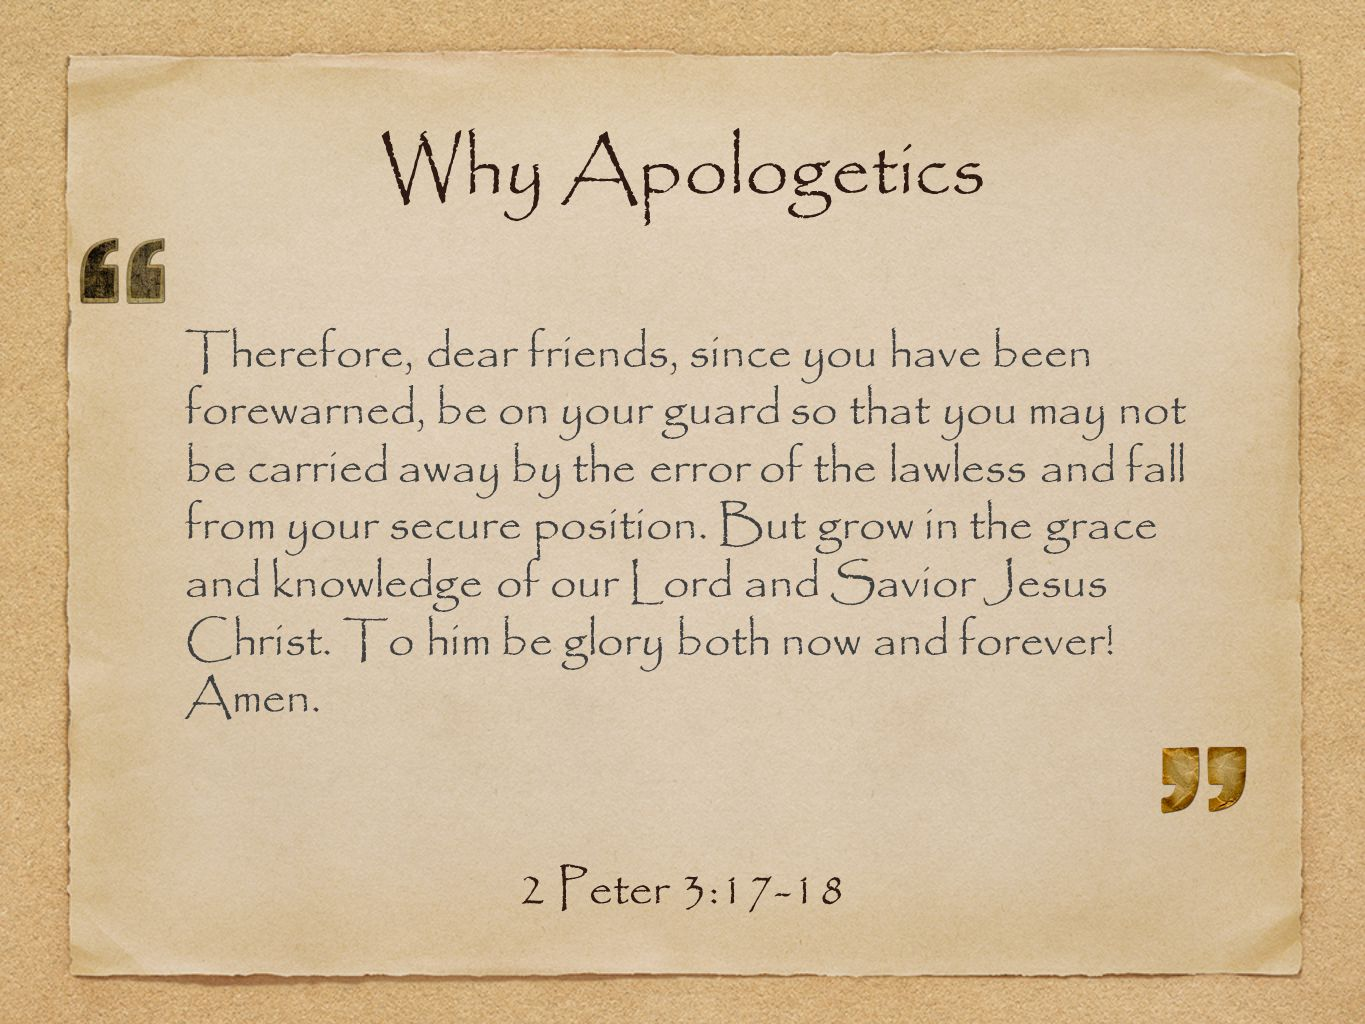 Why Apologetics Therefore, dear friends, since you have been forewarned, be on your guard so that you may not be carried away by the error of the lawless and fall from your secure position.